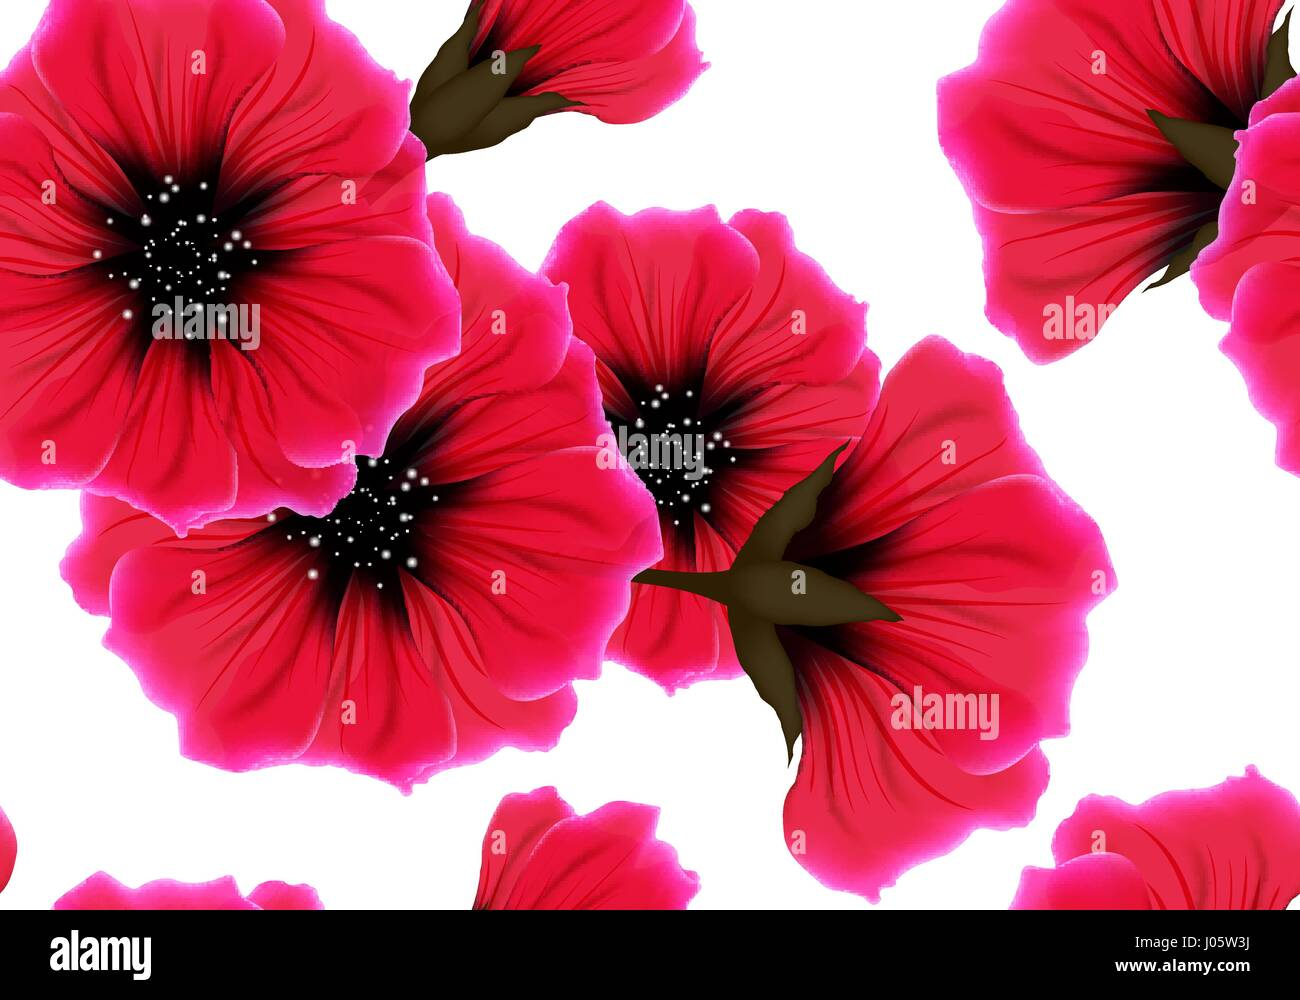 Floral Seamless Pattern With Red Flower And Pink Petal On White